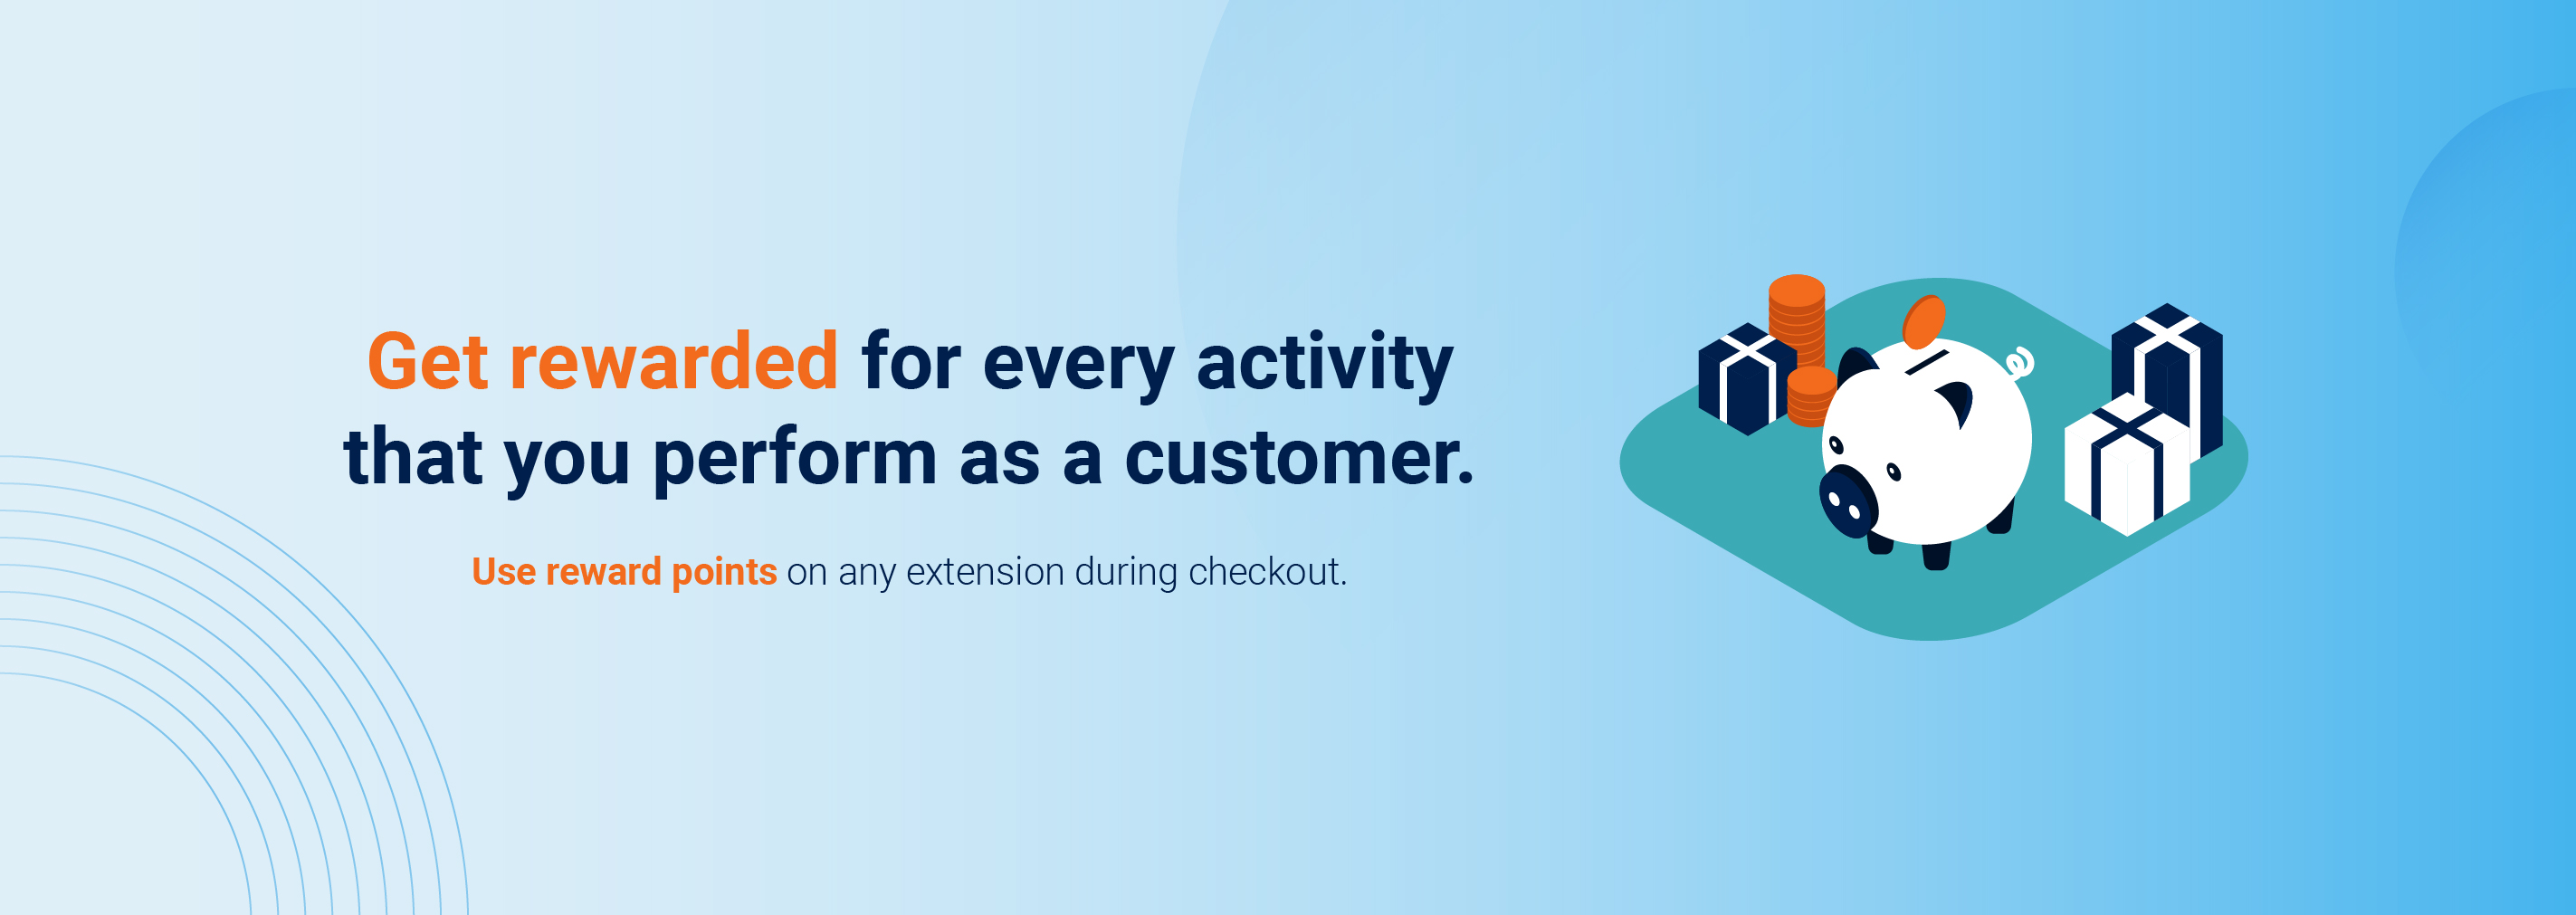 Customer Rewards/Loyalty Program